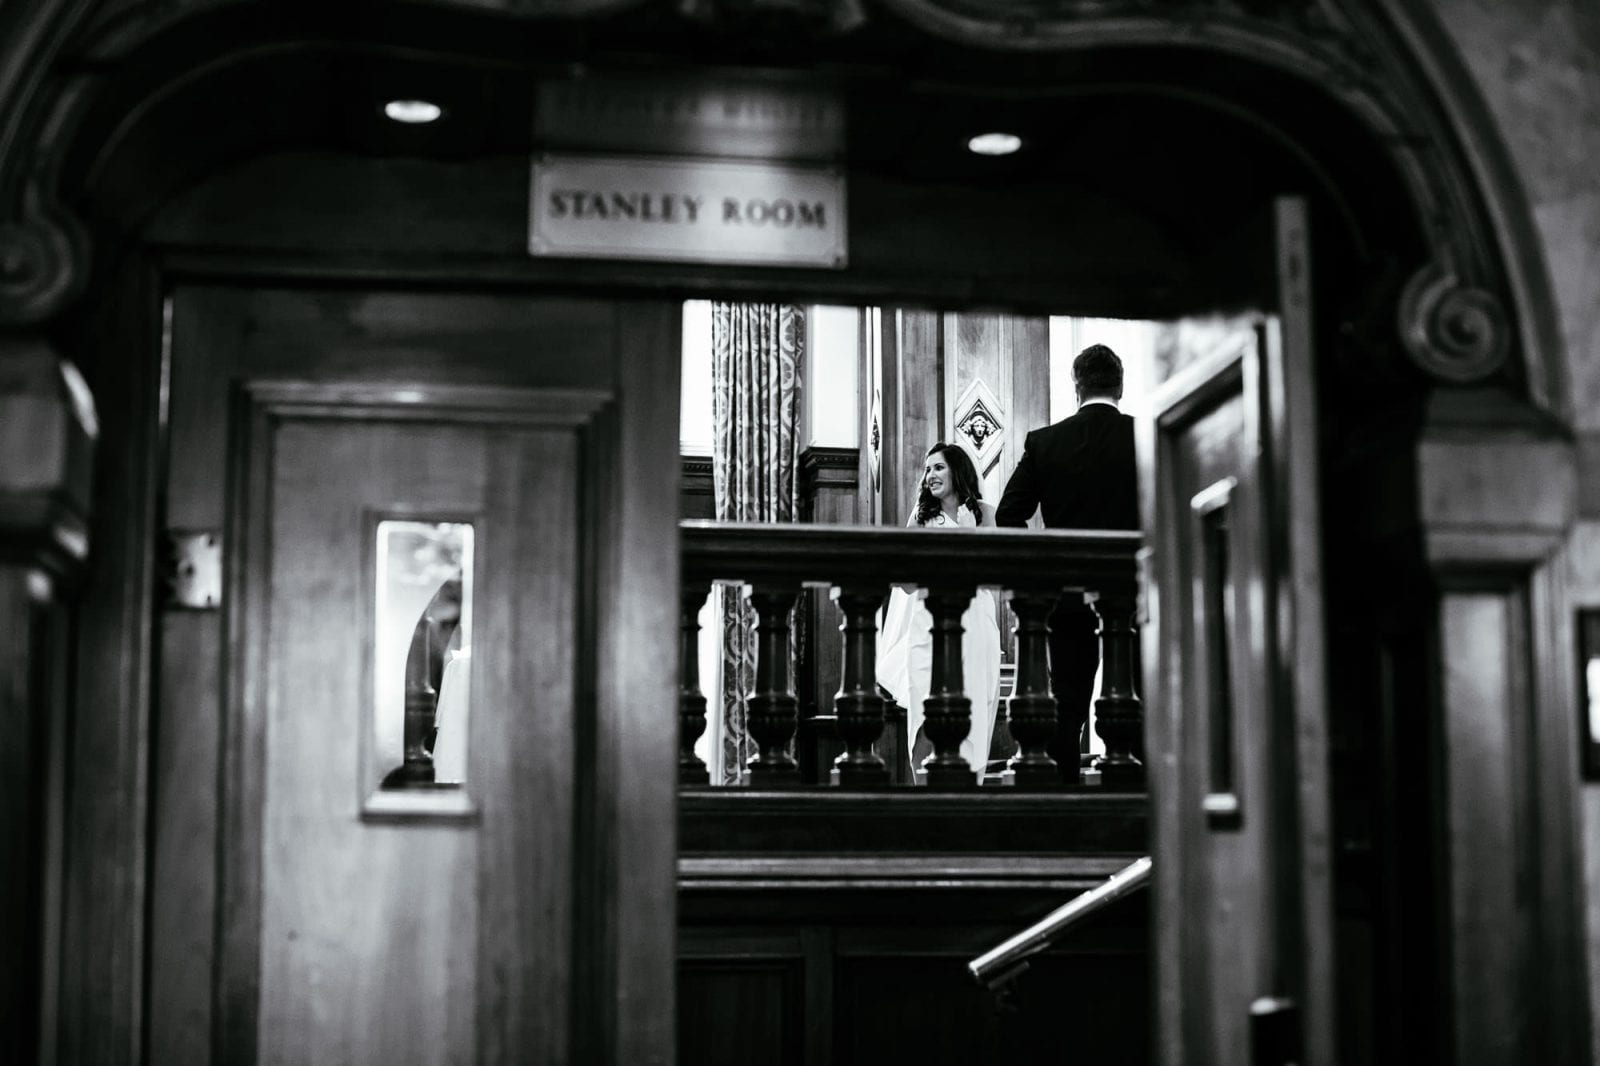 Stanley Room at The Midland Hotel Manchester